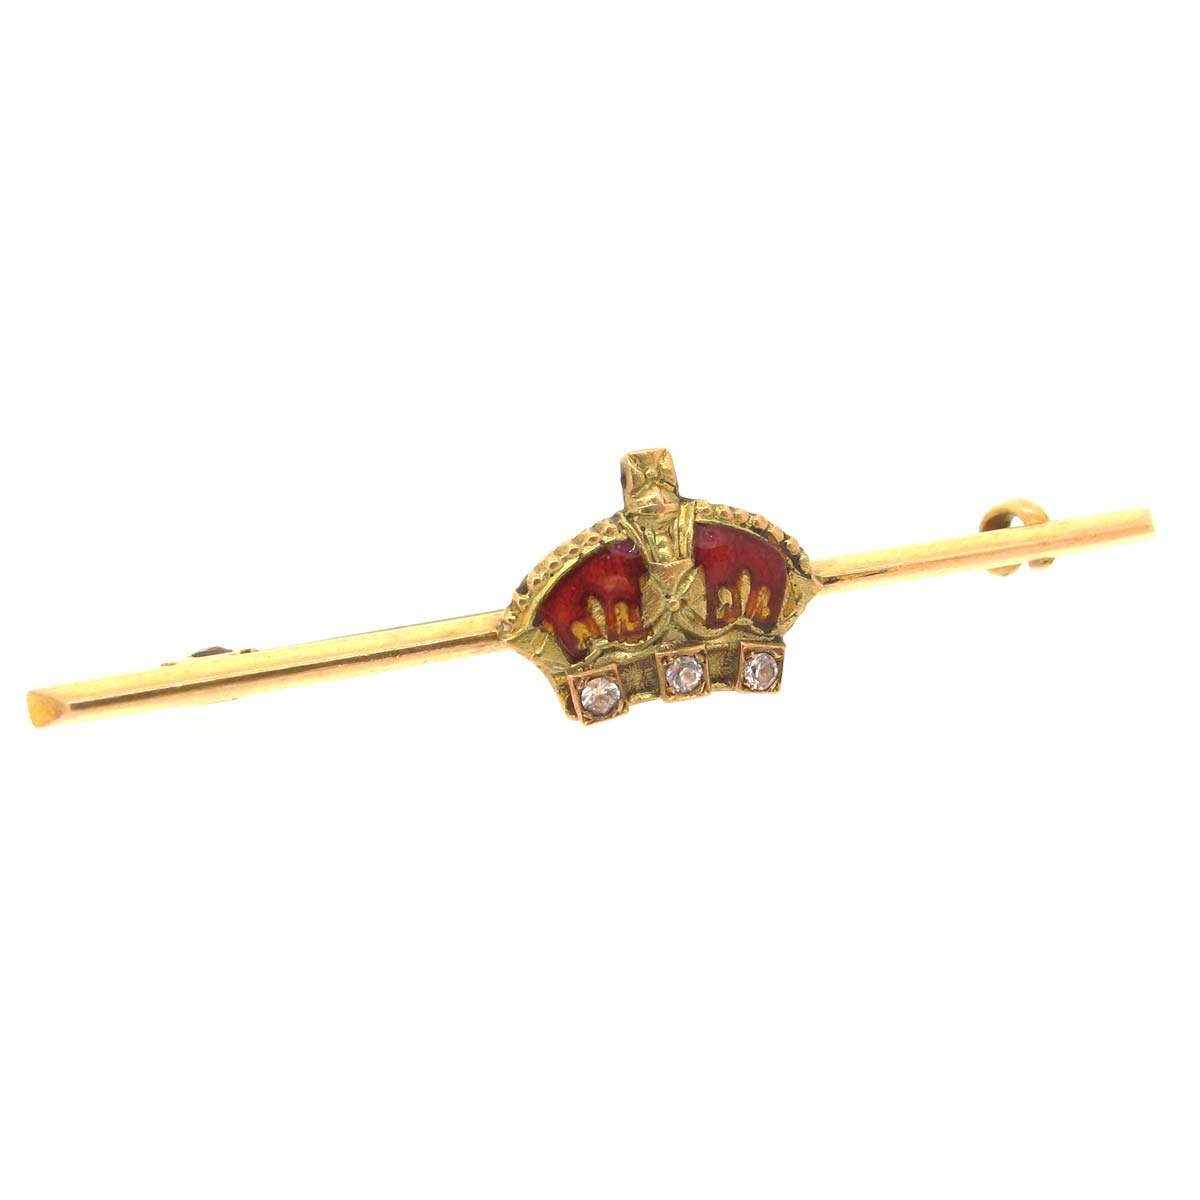 Antique Gold, Enamel & Diamond Crown Brooch